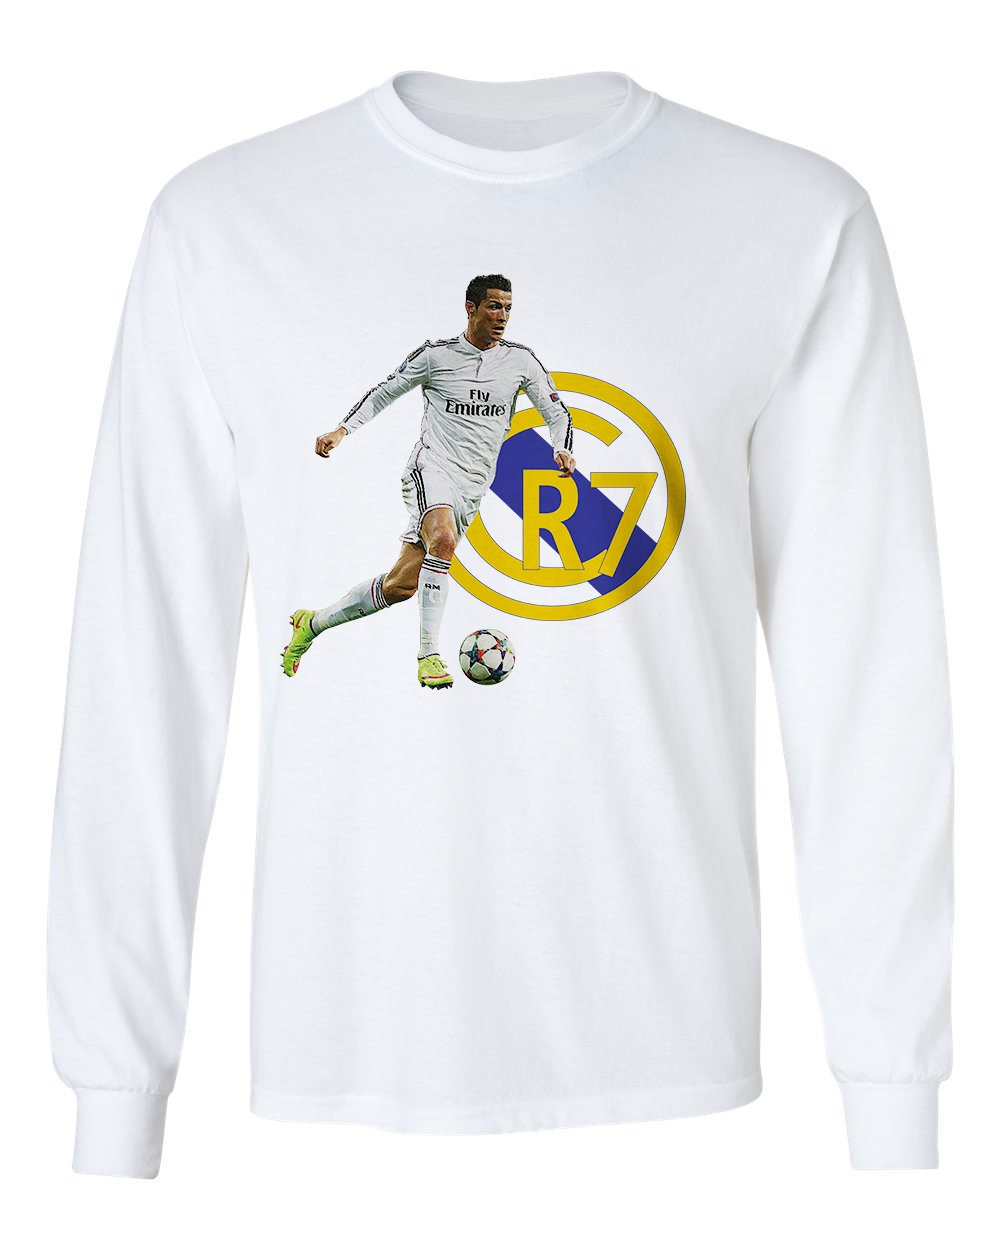 size 40 d95f0 a9392 SMARTZONE Cristiano Ronaldo Real Madrid CR7 Soccer Men's Long Sleeve T-Shirt